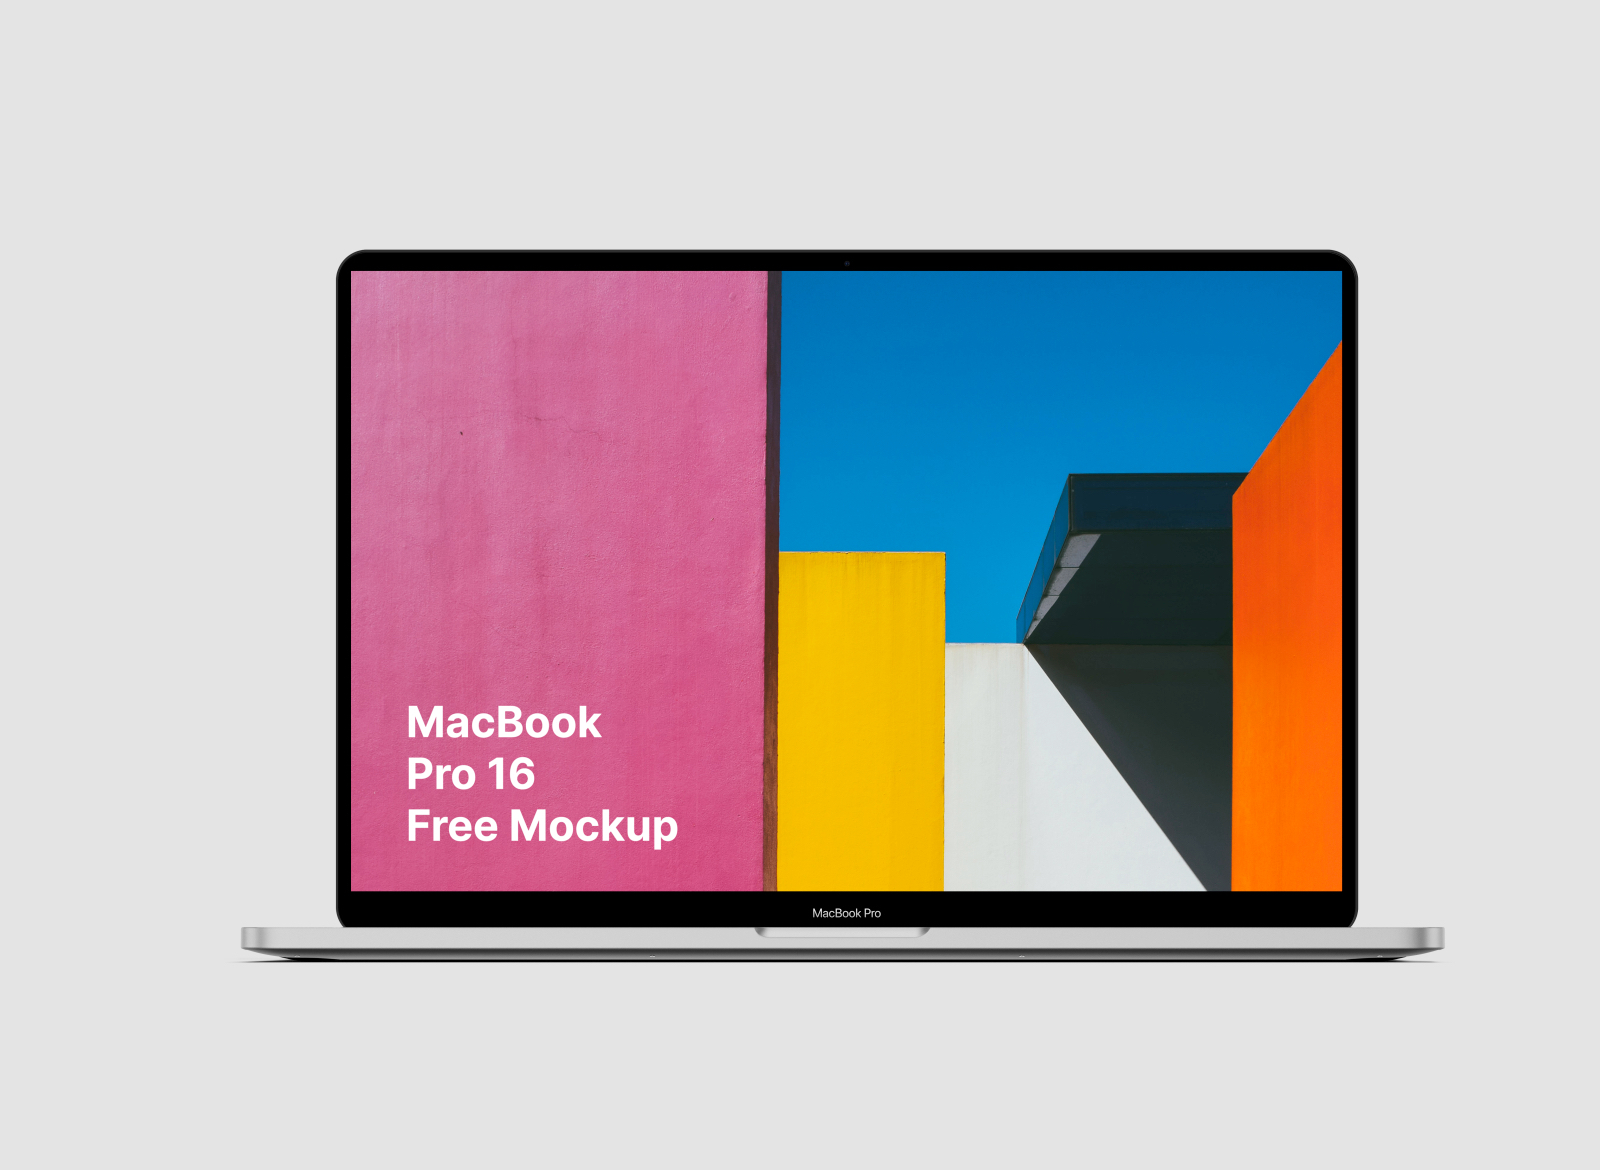 Free Macbook Pro 16 Mockup - Newest MacBook Pro 16 mockup. Use it for your web design or app design projects